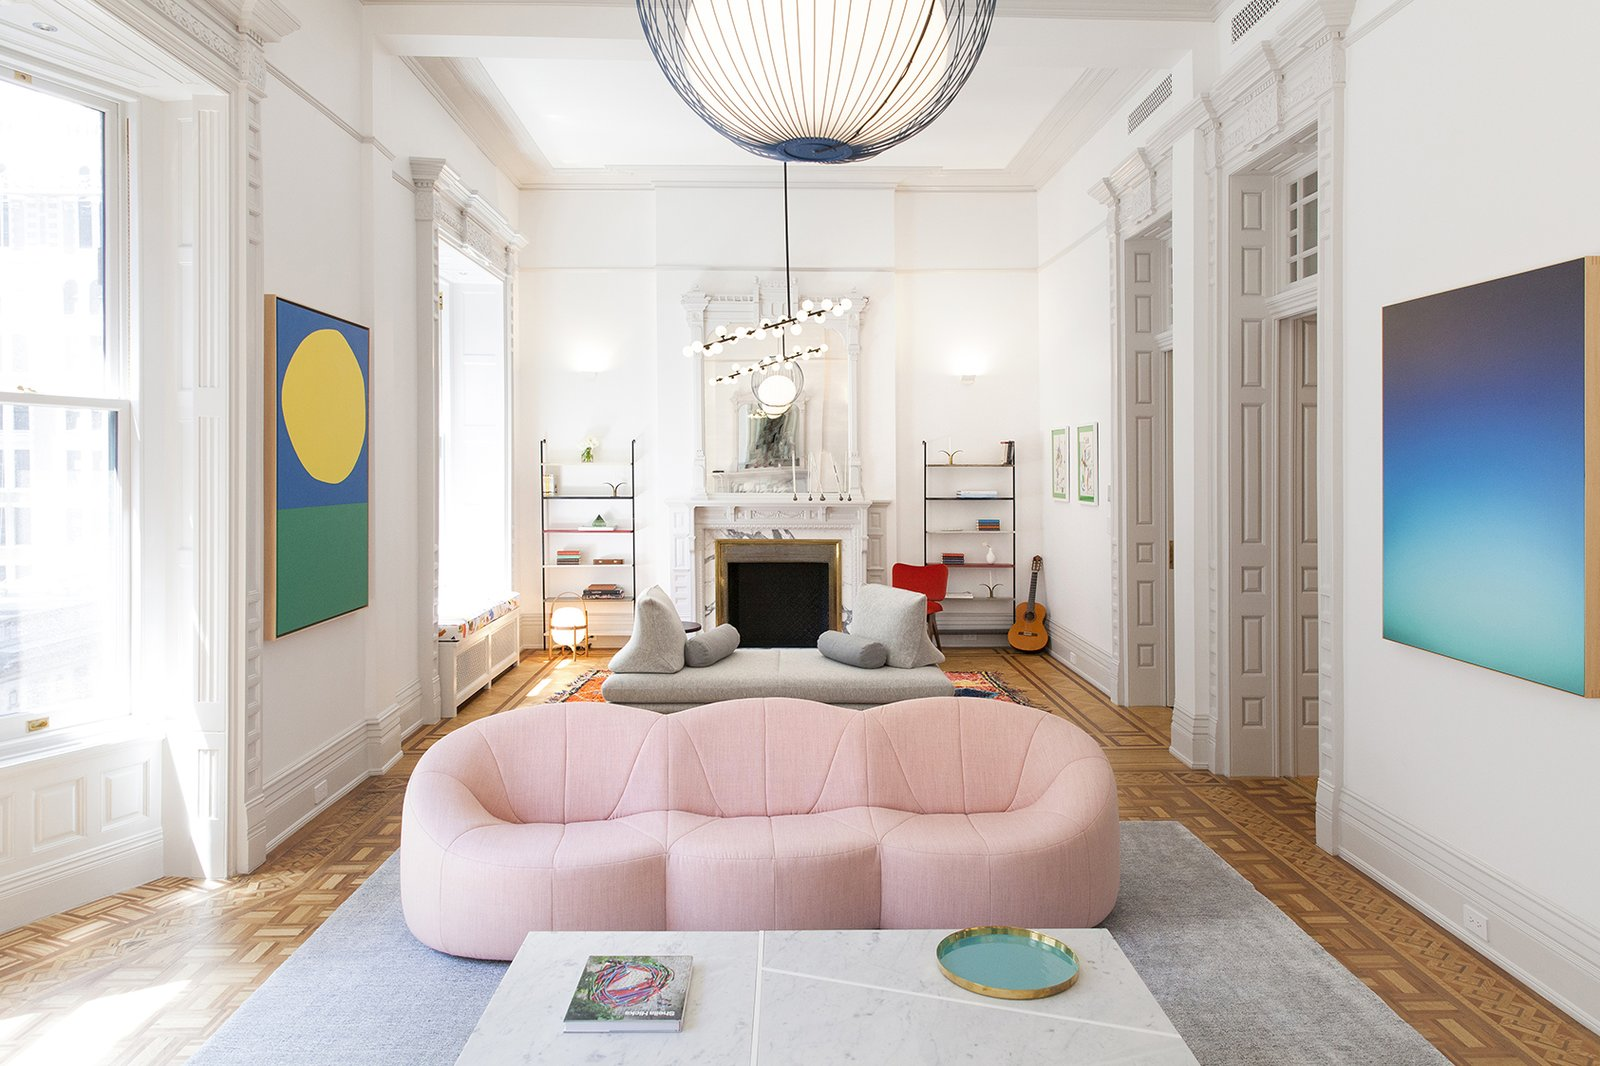 The curvy shape of this pink sofa gives it a fun, playful quality.